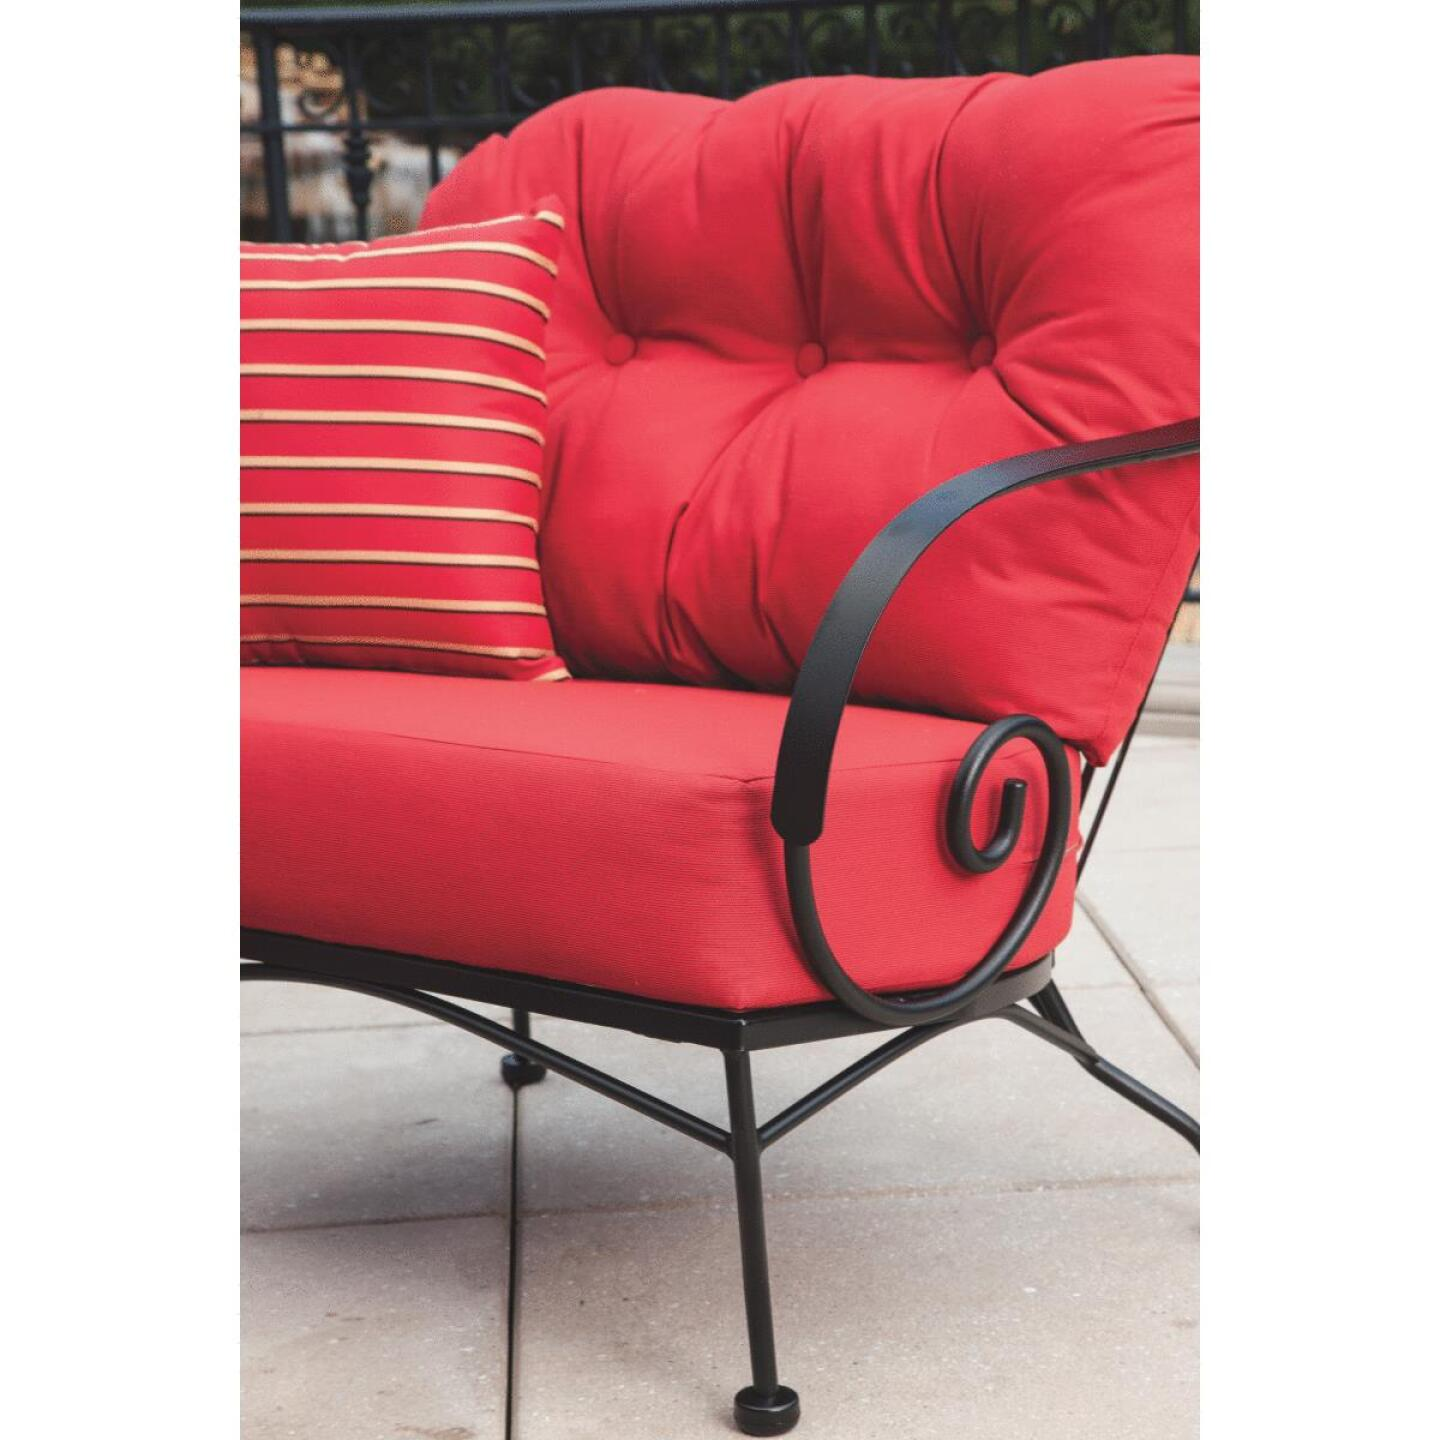 Brantley 3-Piece Steel Chat Set with Red Cushions Image 8